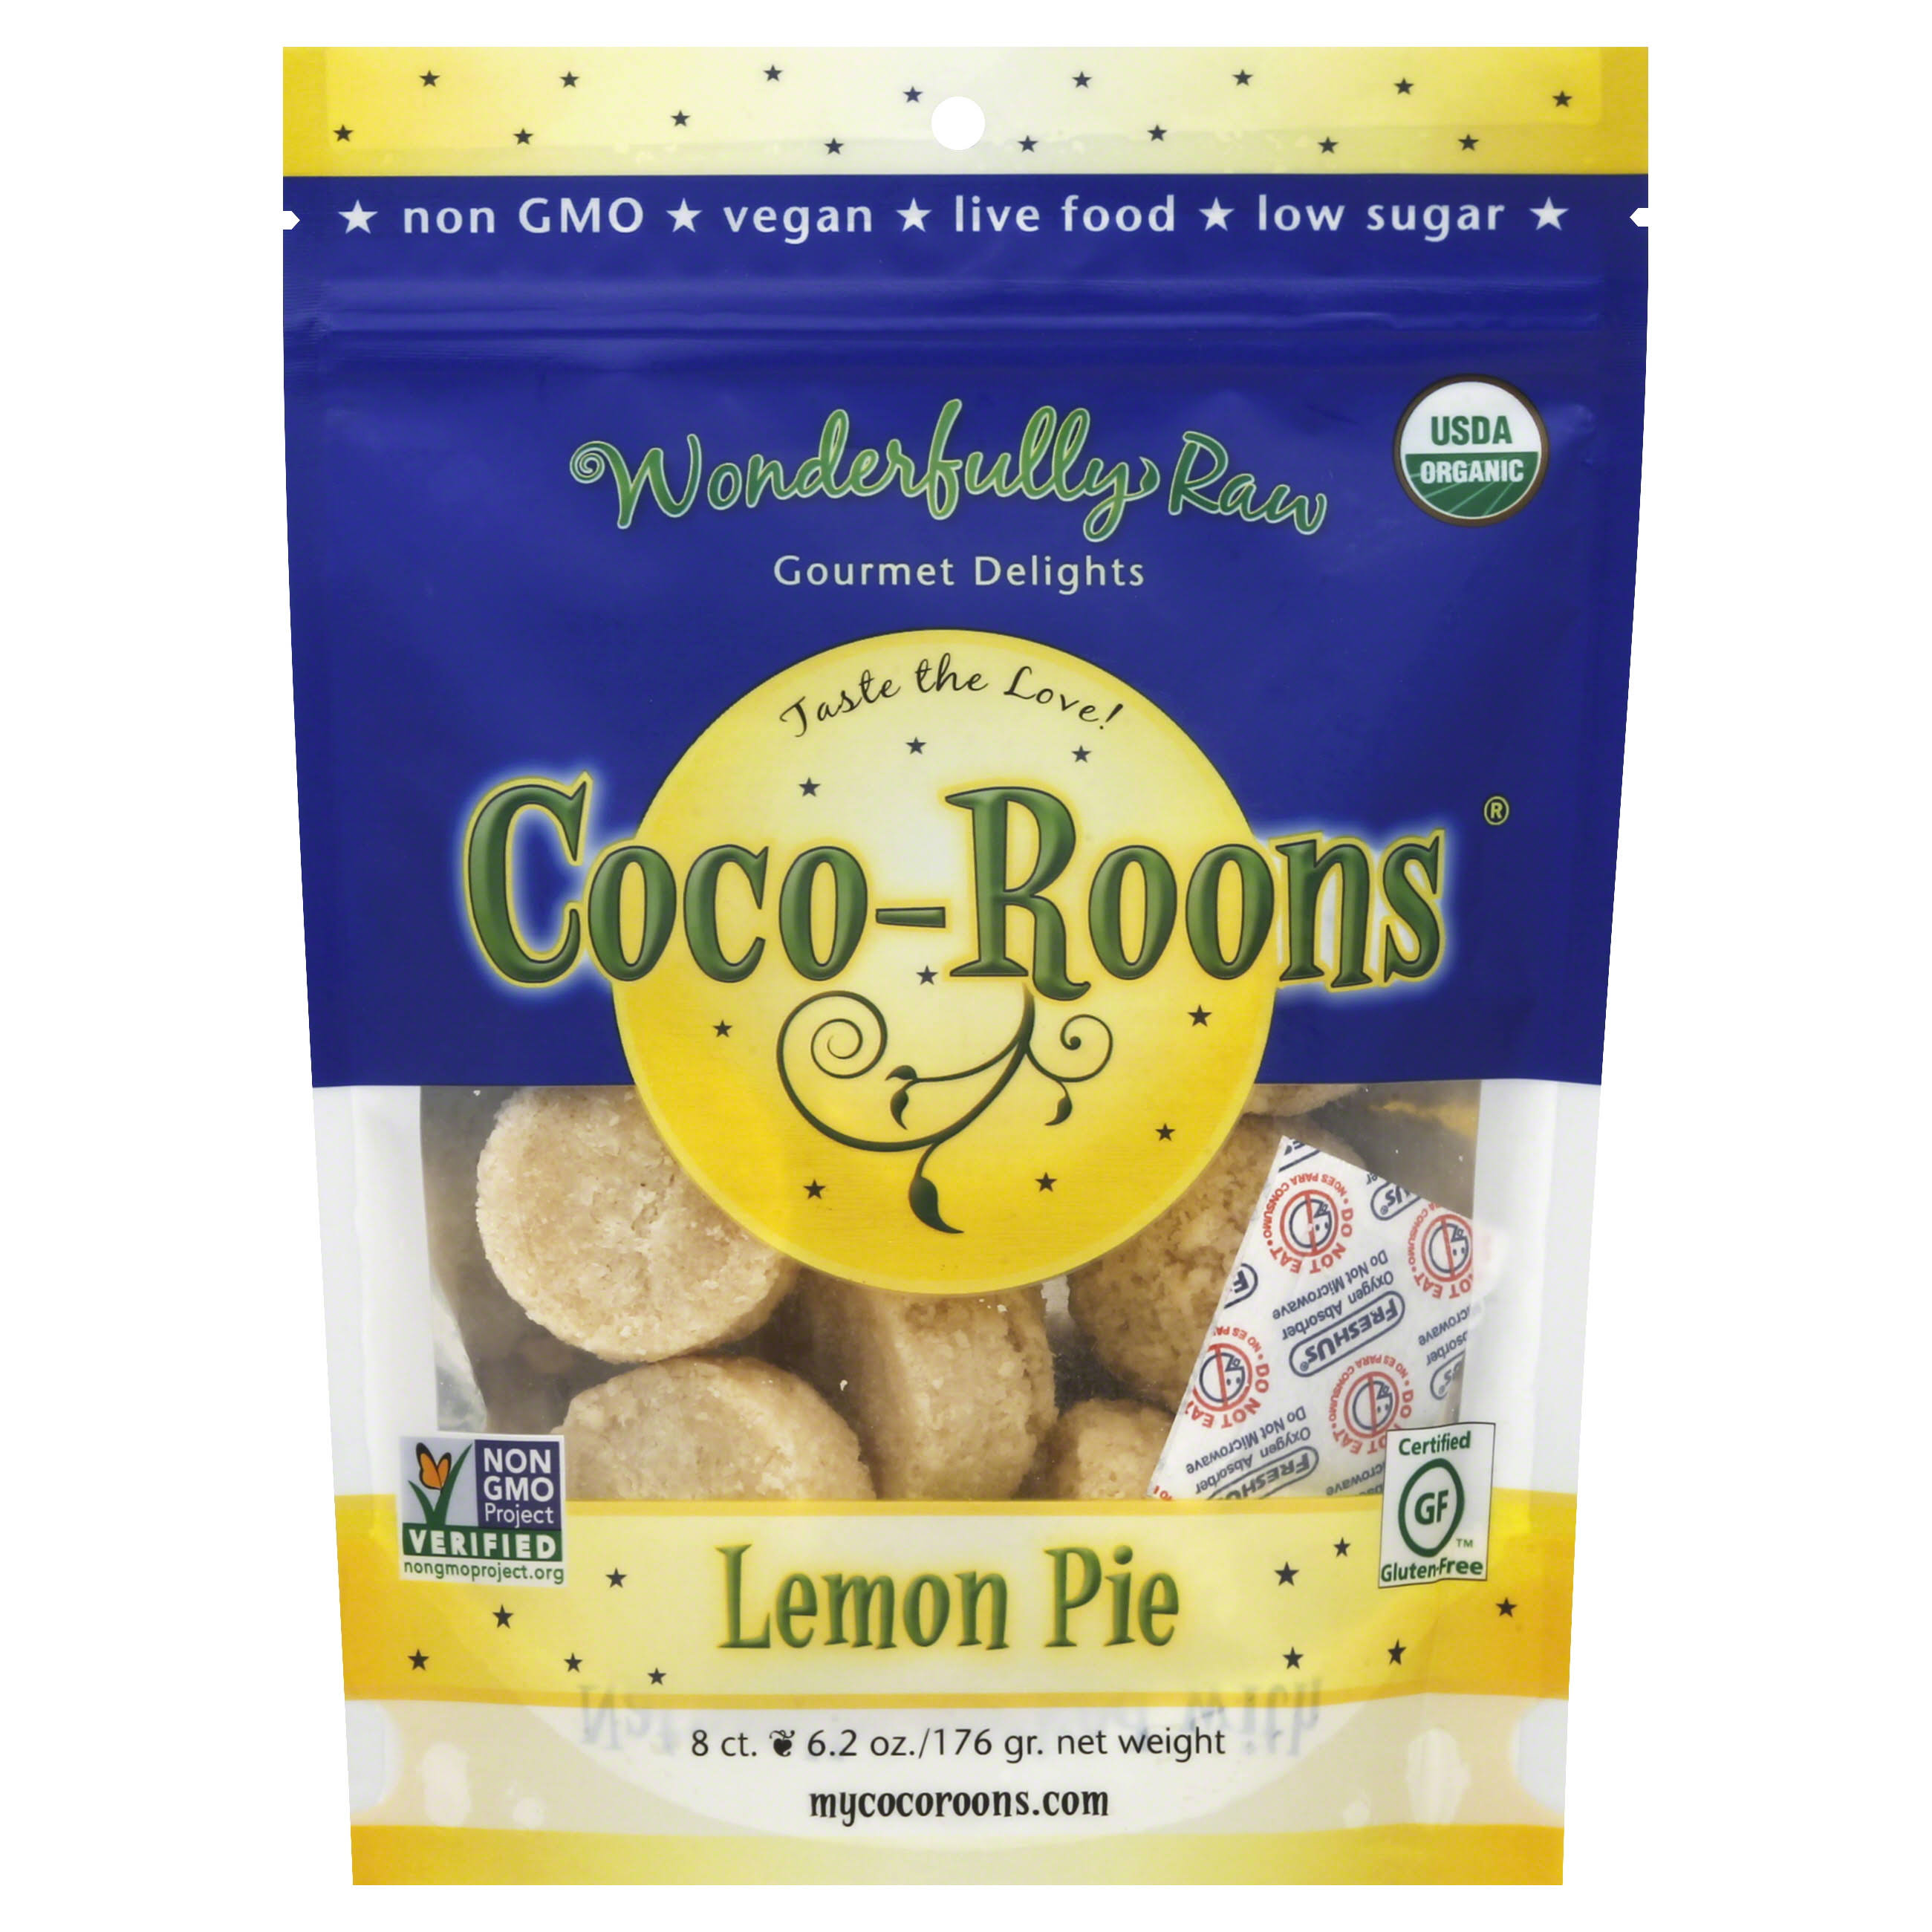 Wonderfully Raw Gourmet Delights Organic Coco-Roons - Lemon Pie, 6.2oz